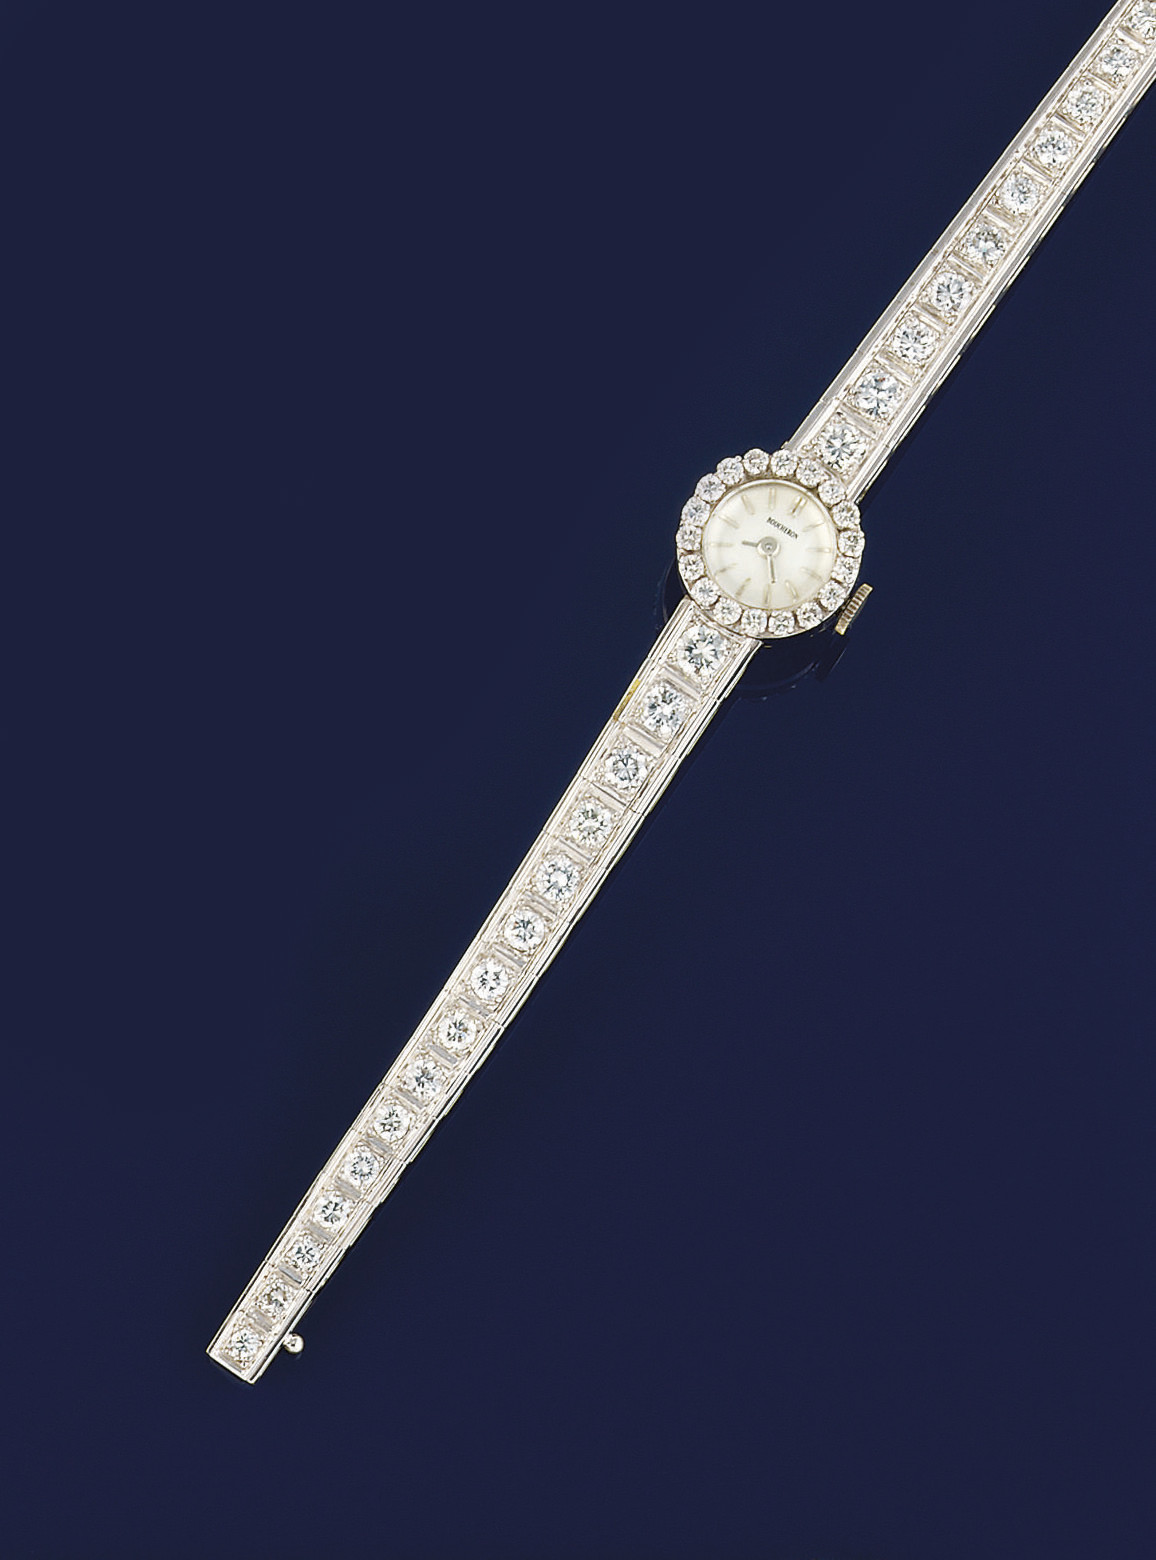 A DIAMOND WRISTWATCH, BY BOUCH